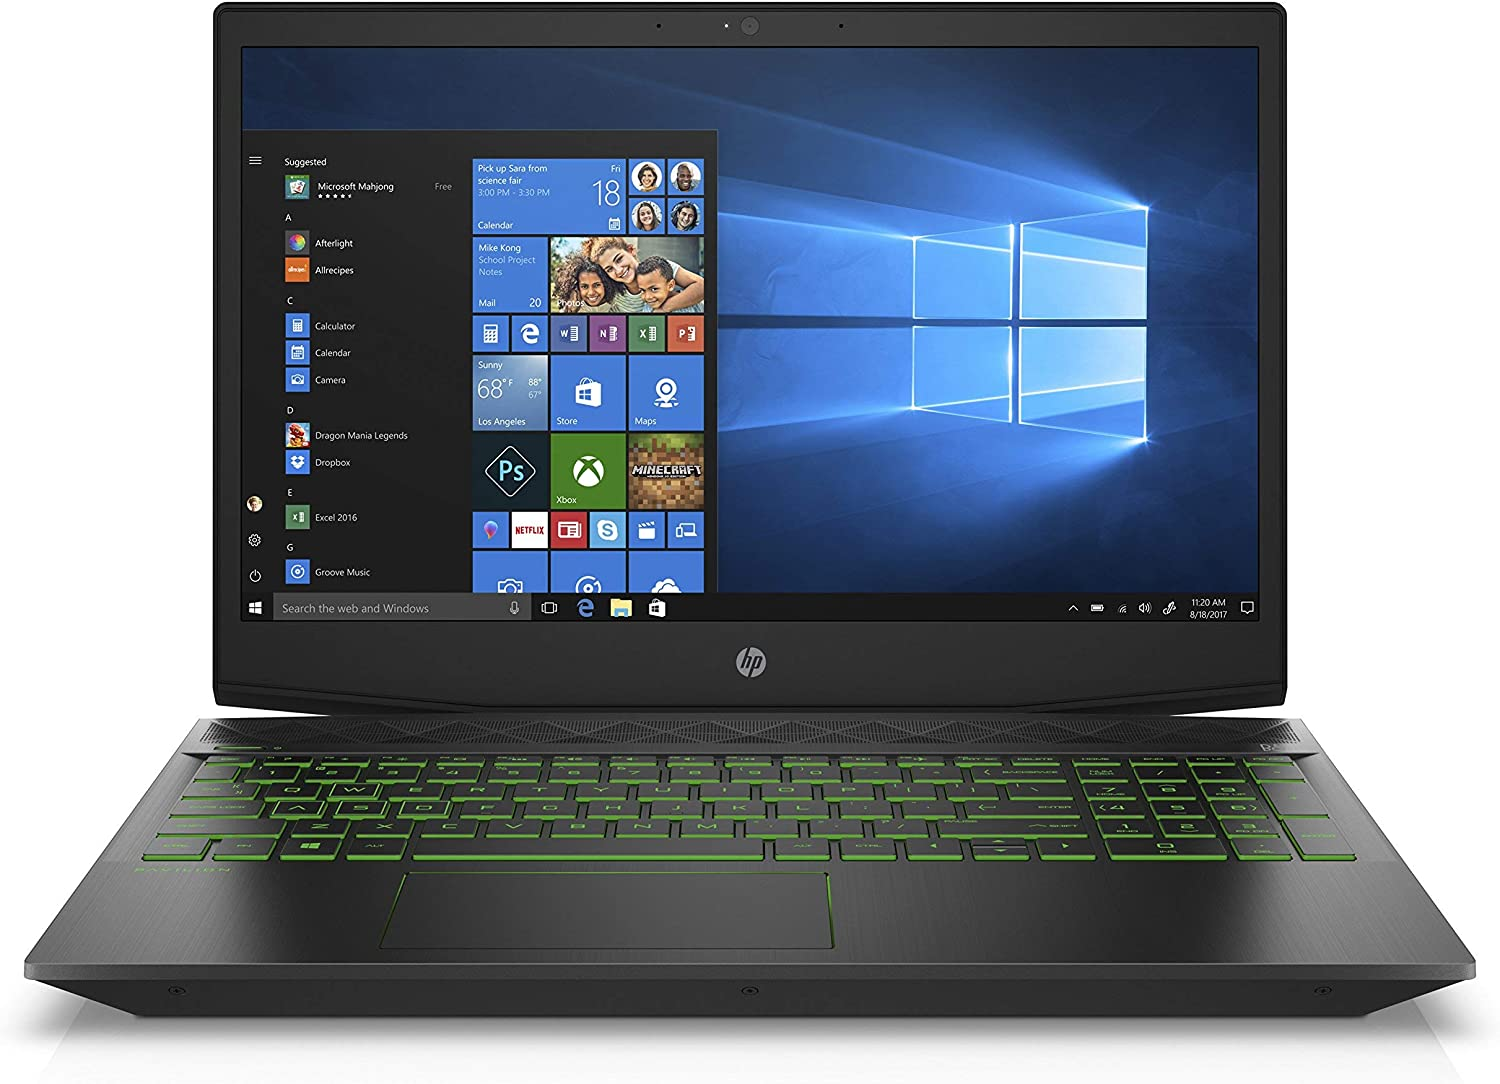 HP Pavilion Gaming 15-inch Laptop, Intel Core i5-8300H Processor, NVIDIA GeForce GTX 1050 Ti 4 GB, 8 GB RAM, 1 TB hard drive and 128 GB SSD, Windows 10 Home (15-cx0030nr, Black) (Renewed)